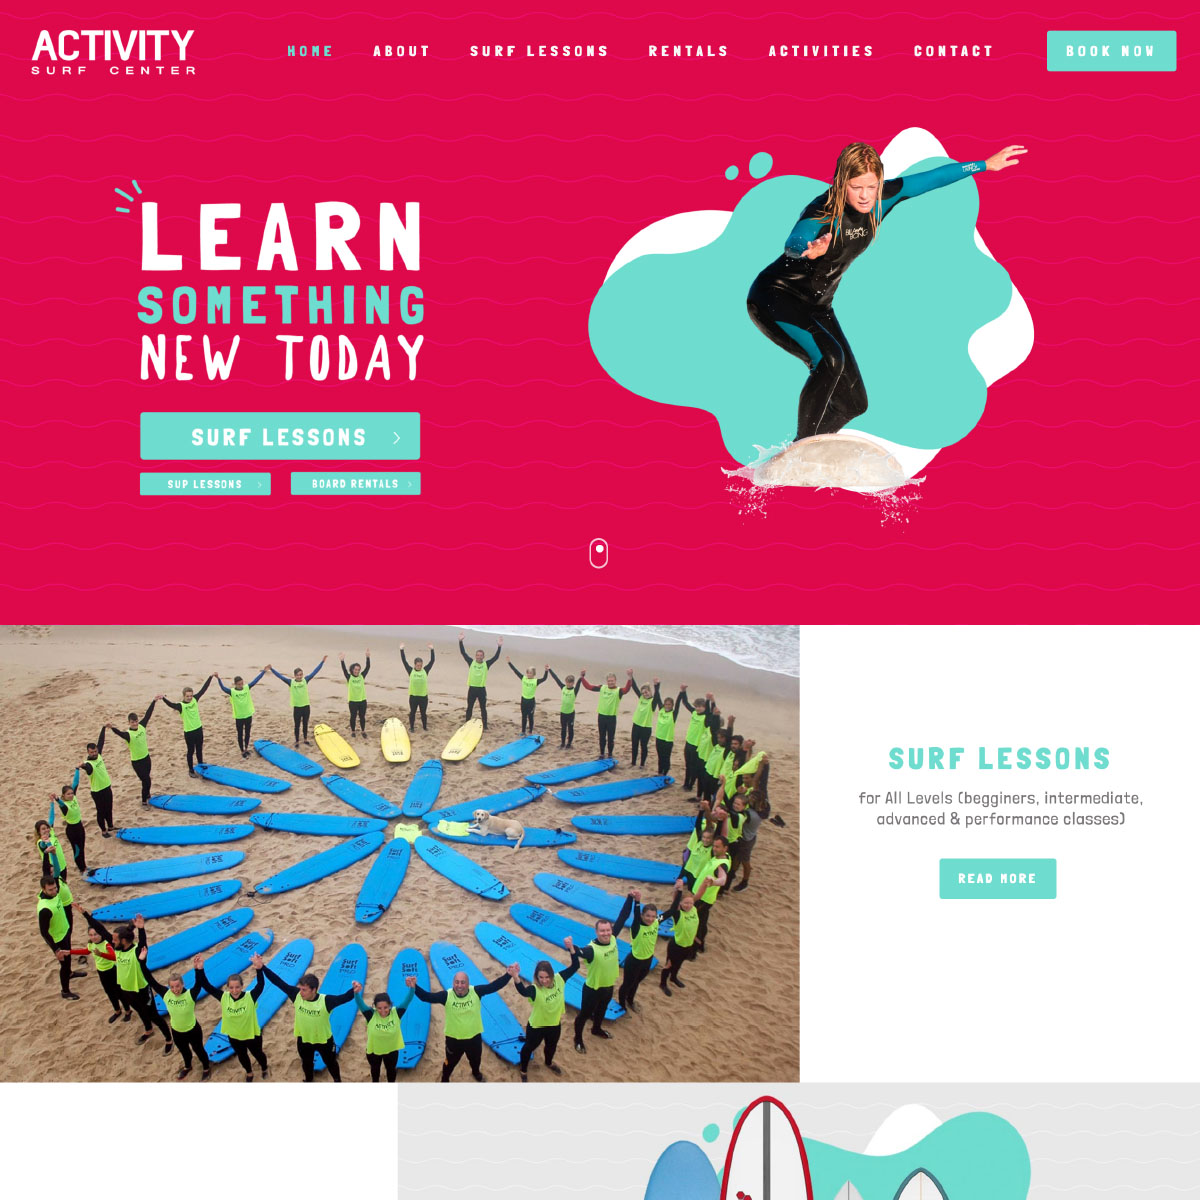 web-activity-surf-center